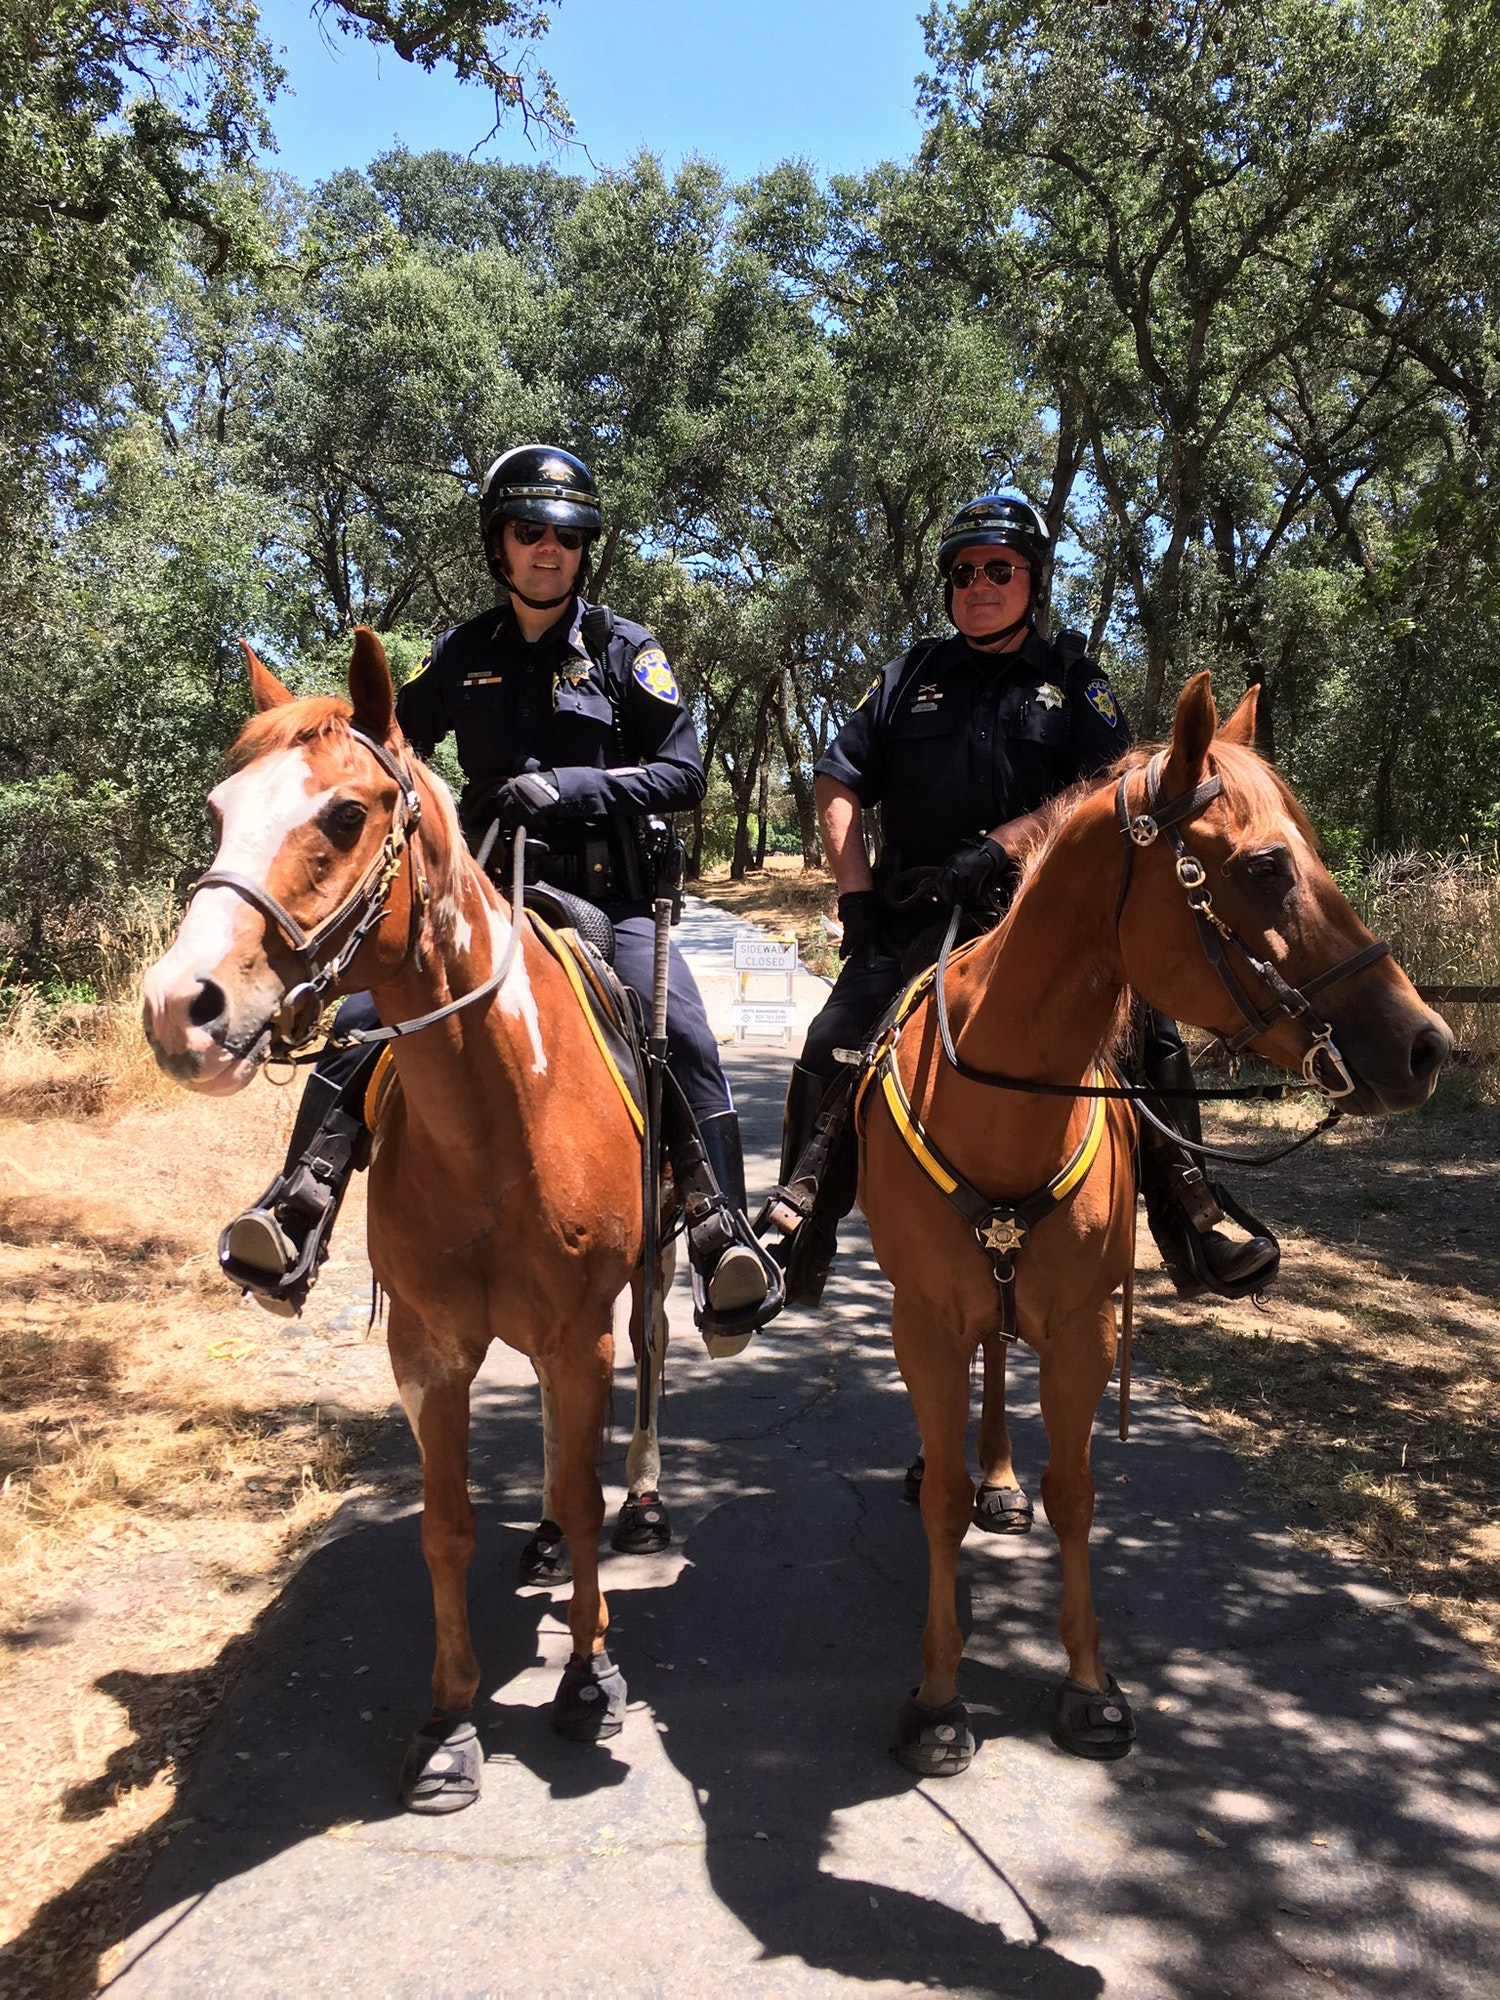 Park Police officers from the Fulton El-Camino Recreation and Park District on horseback.